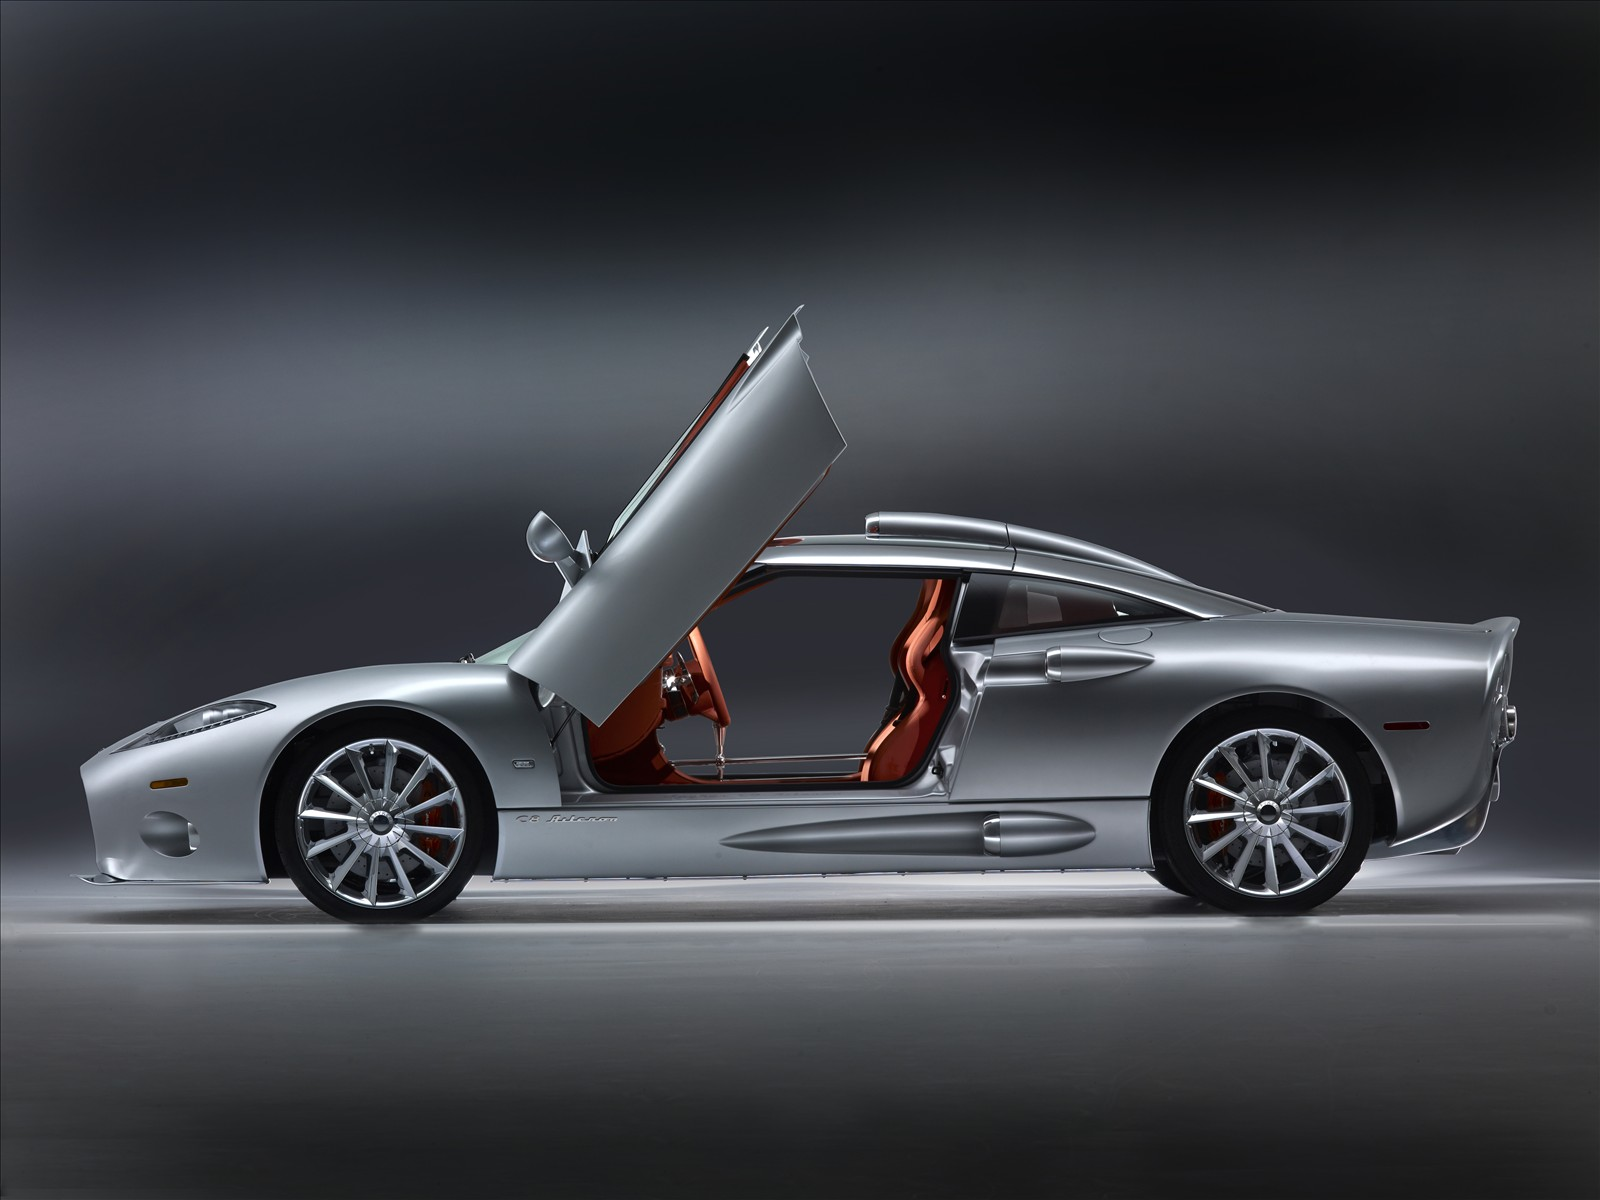 Car Pictures Spyker C8 Aileron 2009